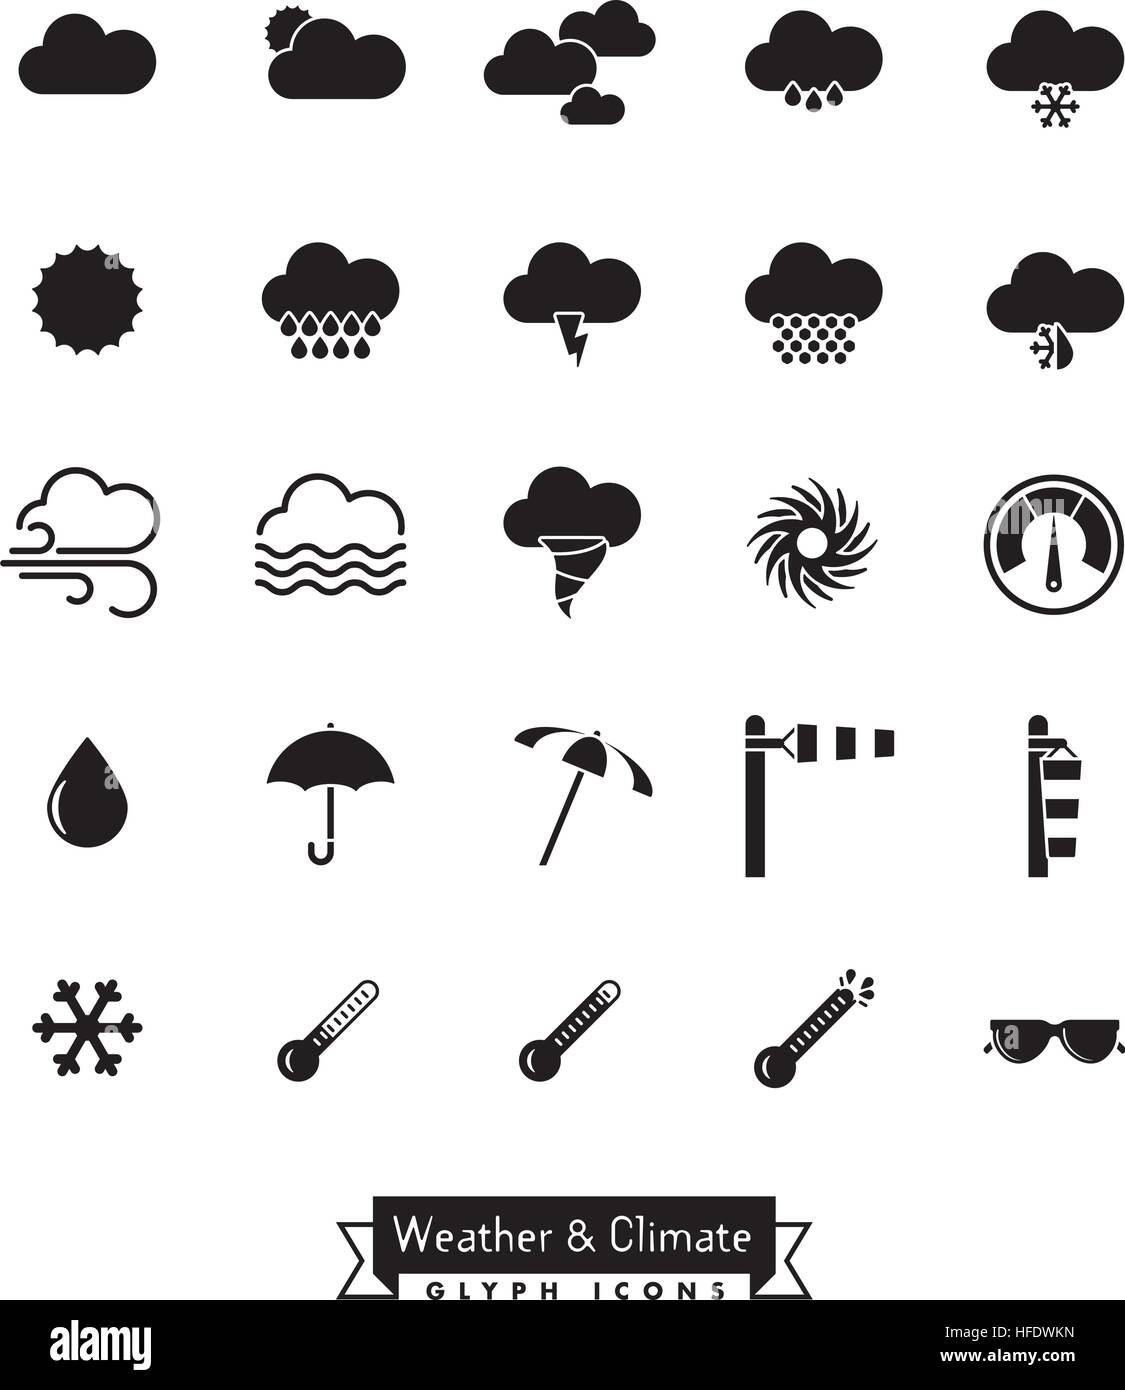 Collection of weather, climate and meteorology related vector icons - Stock Vector